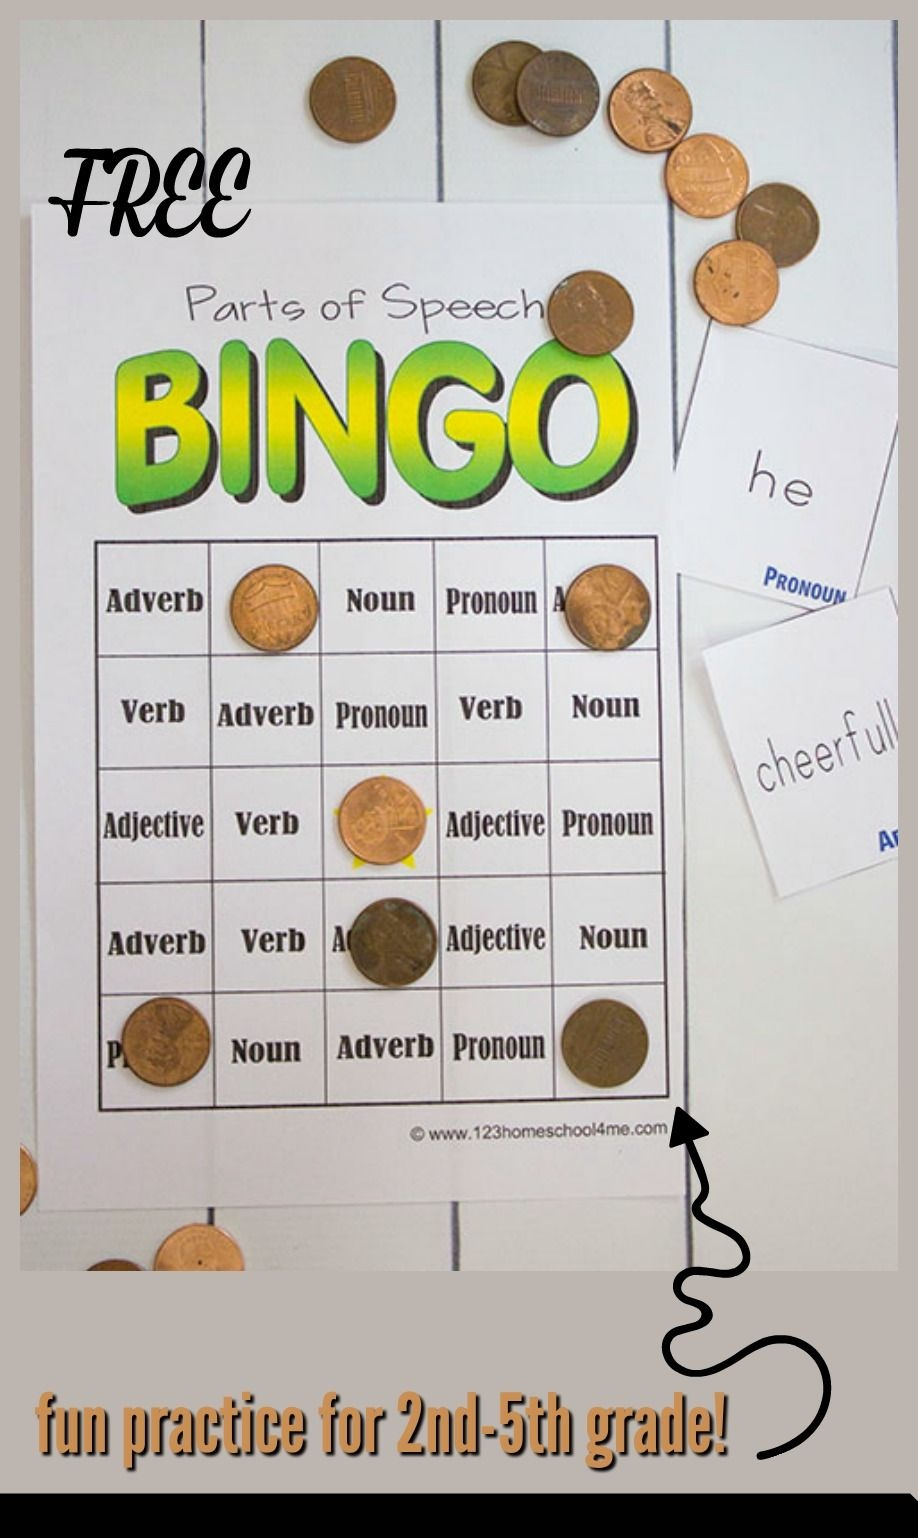 Free Parts Of Speech Game | Education | Parts Of Speech Games, Parts - Free Printable Parts Of Speech Bingo